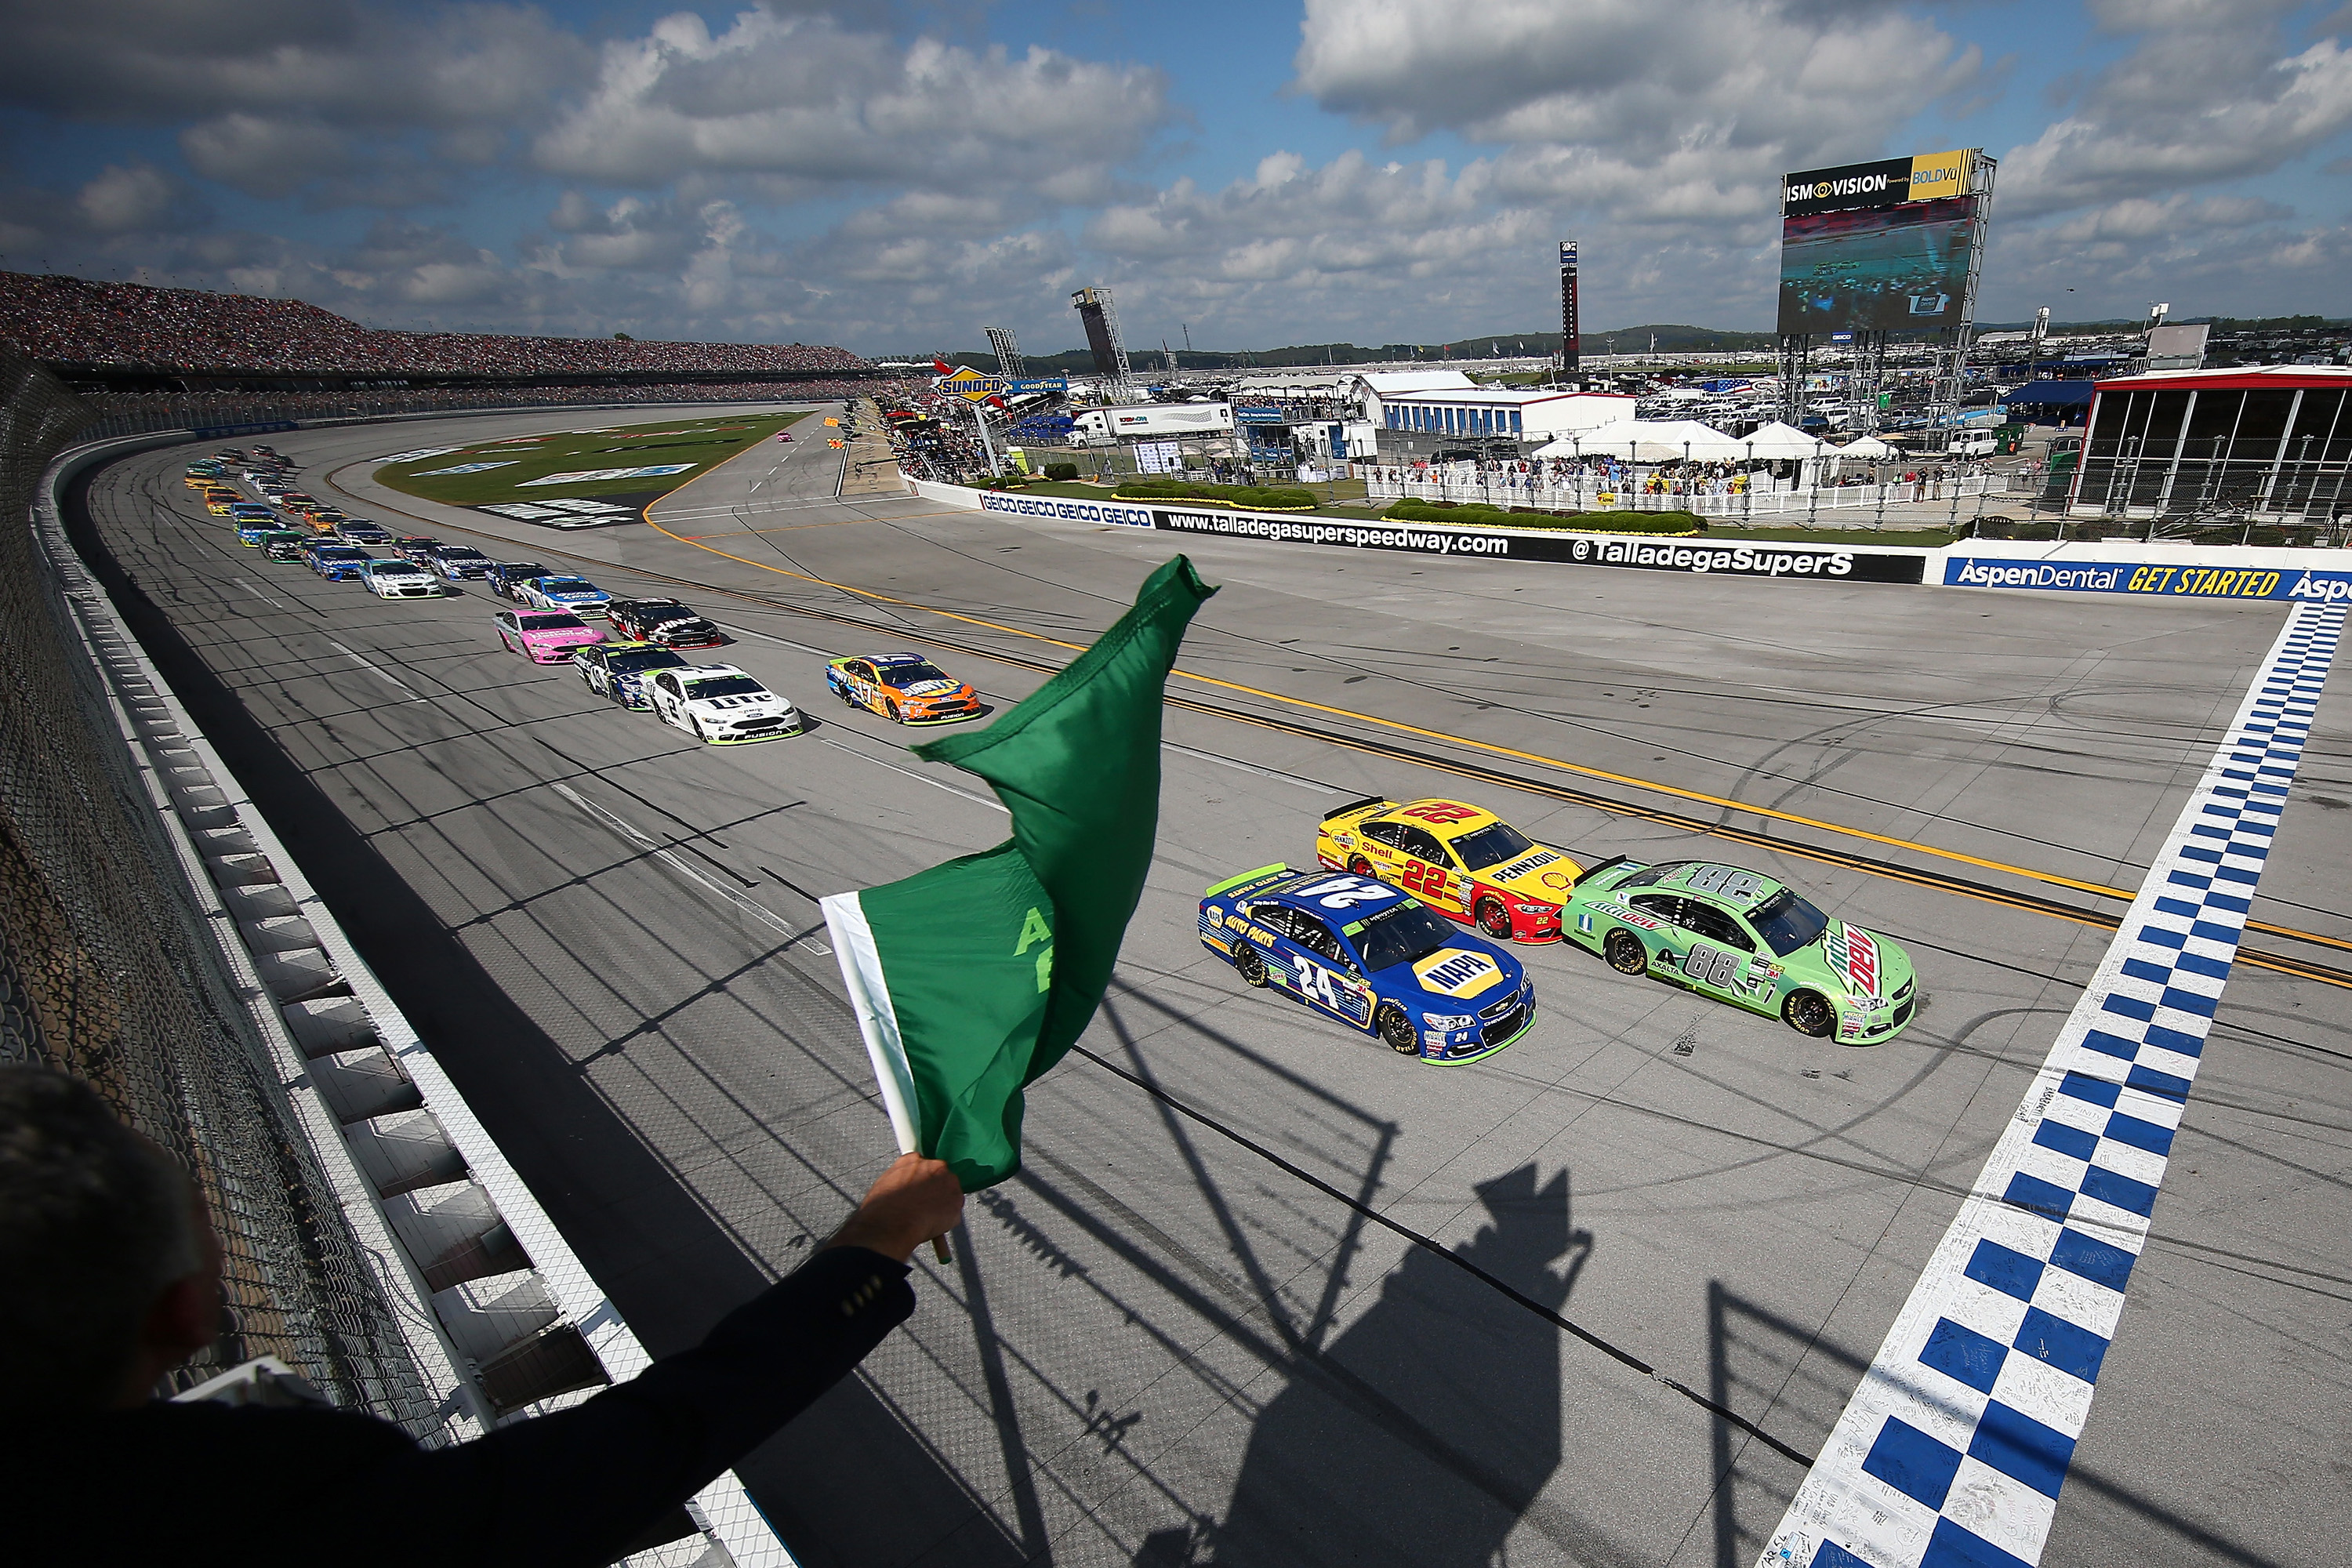 2017 Talladega Superspeedway results - Monster Energy NASCAR Cup Series